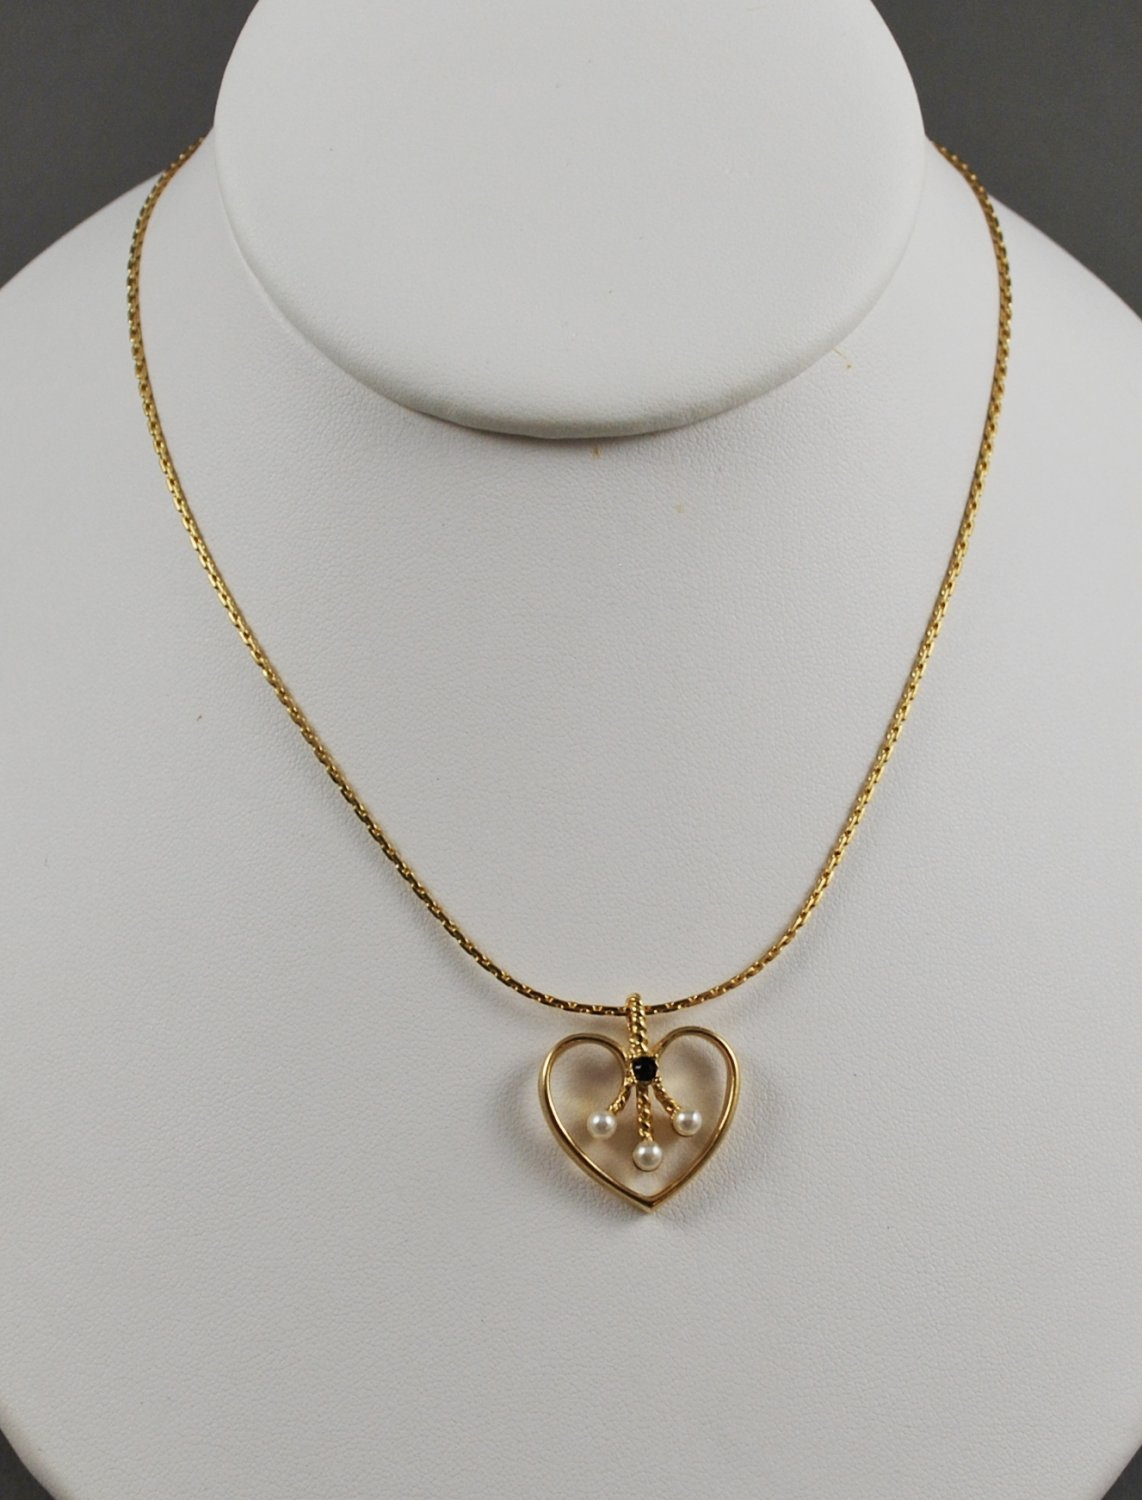 1984 Avon Golden Heart Simulated Pearls and Dark Red Stone Pendant Necklace